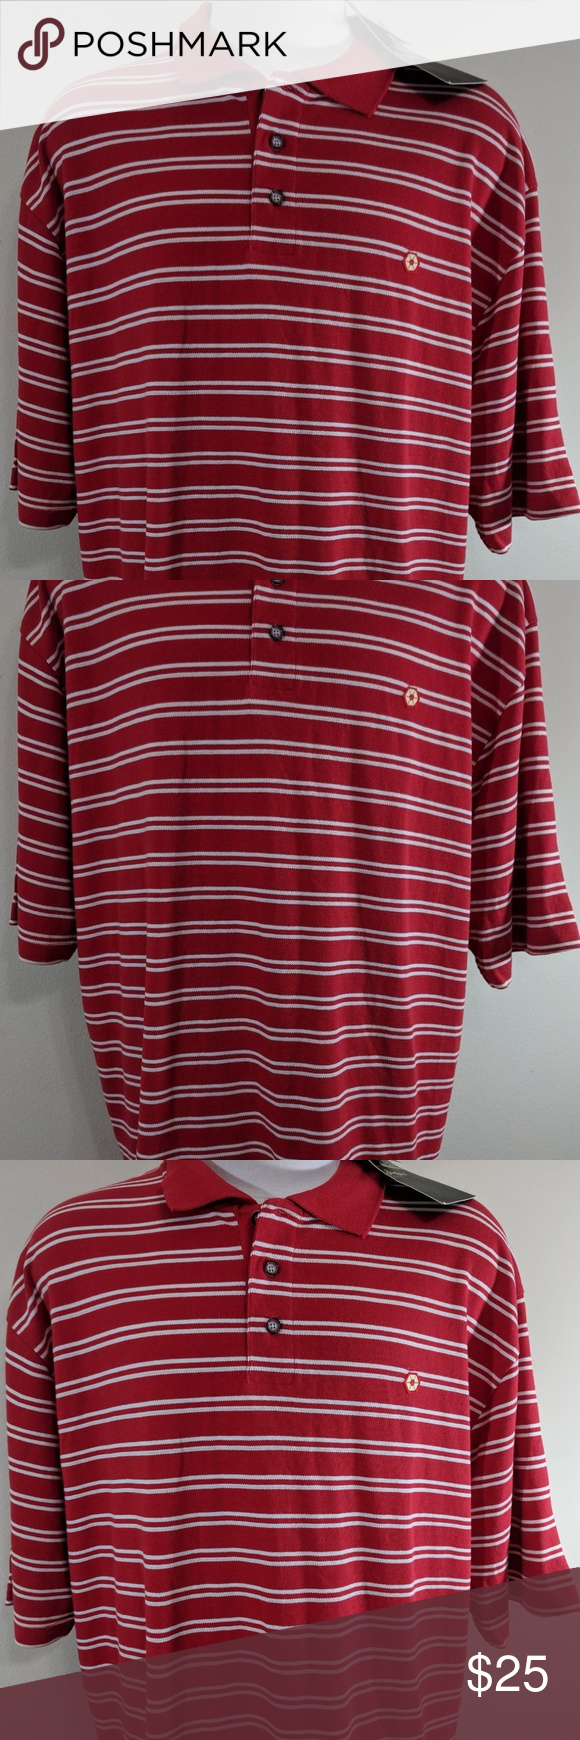 1dda15001fbe Southpole red white short sleeve stripe shirt XXL You are viewing a New  with tags men s